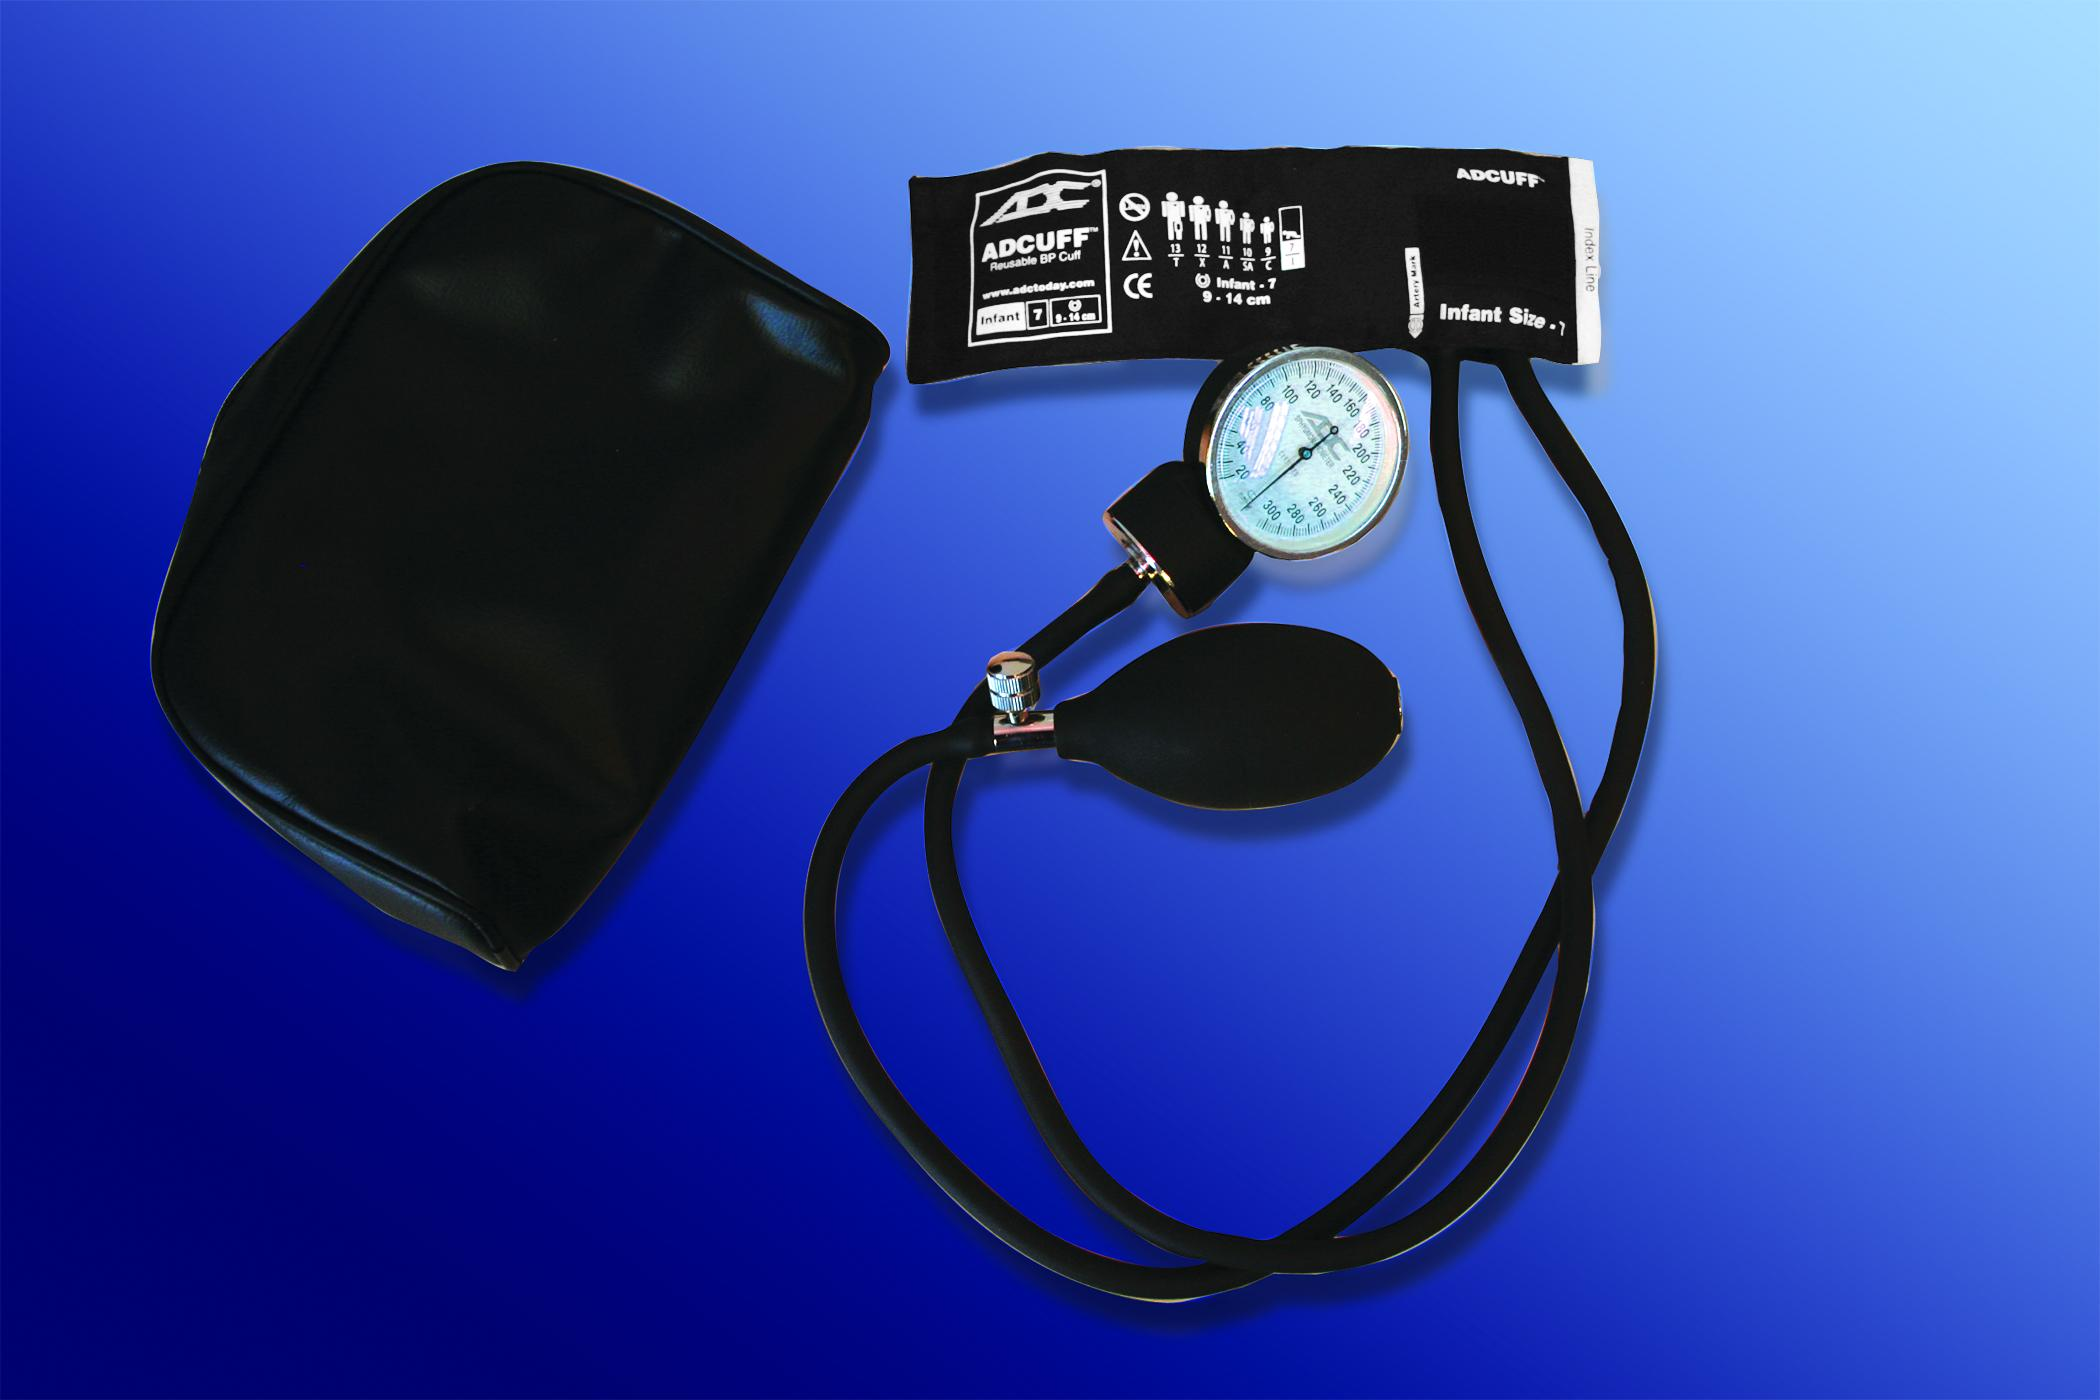 Prosphyg 760 Series Infant Aneroid Sphygmomanometer, Black ADC7607IBK